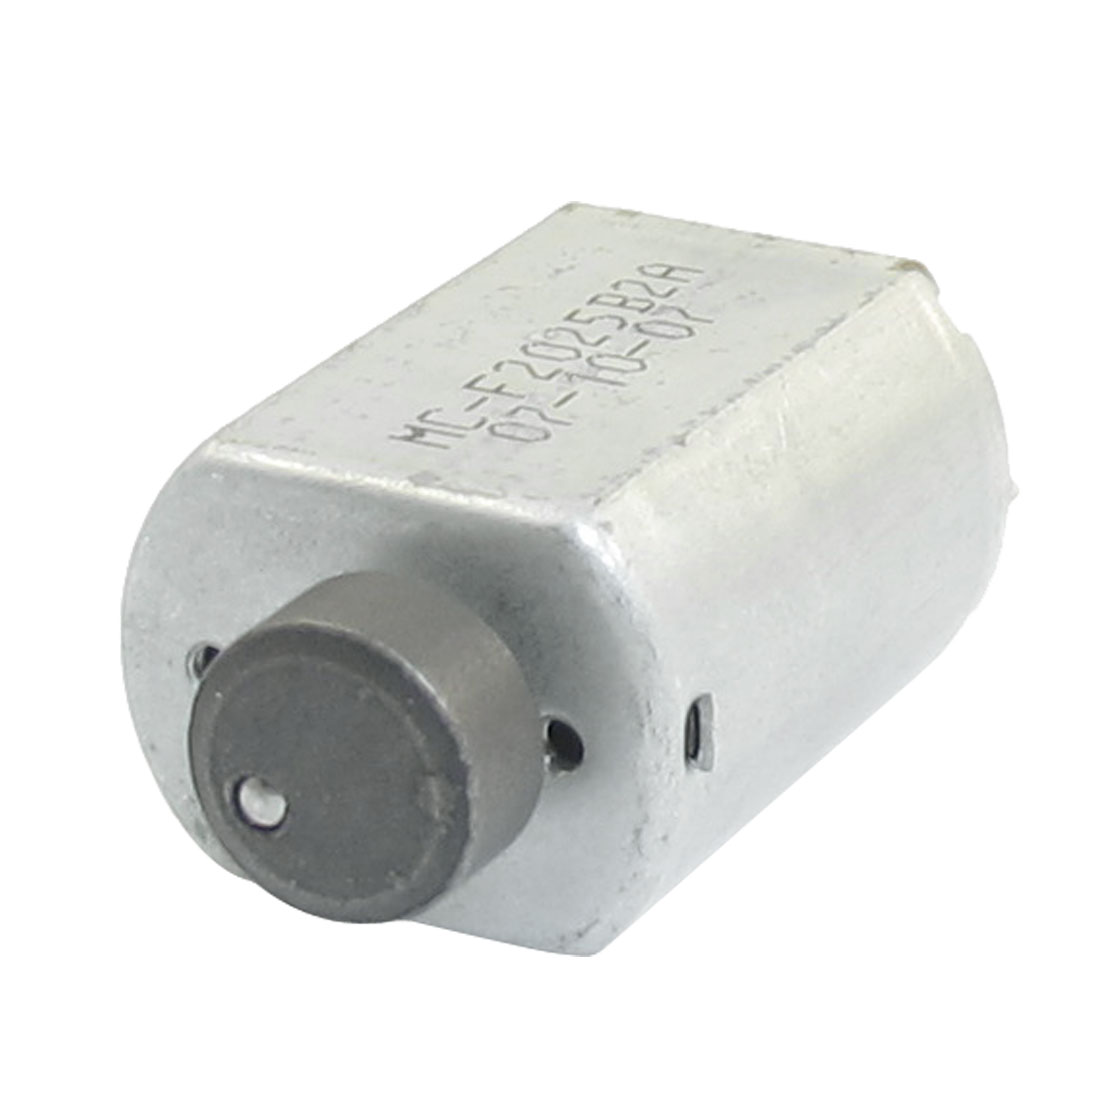 Spare-Part-DC-Vibrating-Vibration-Mini-Motor-6V-7000RPM